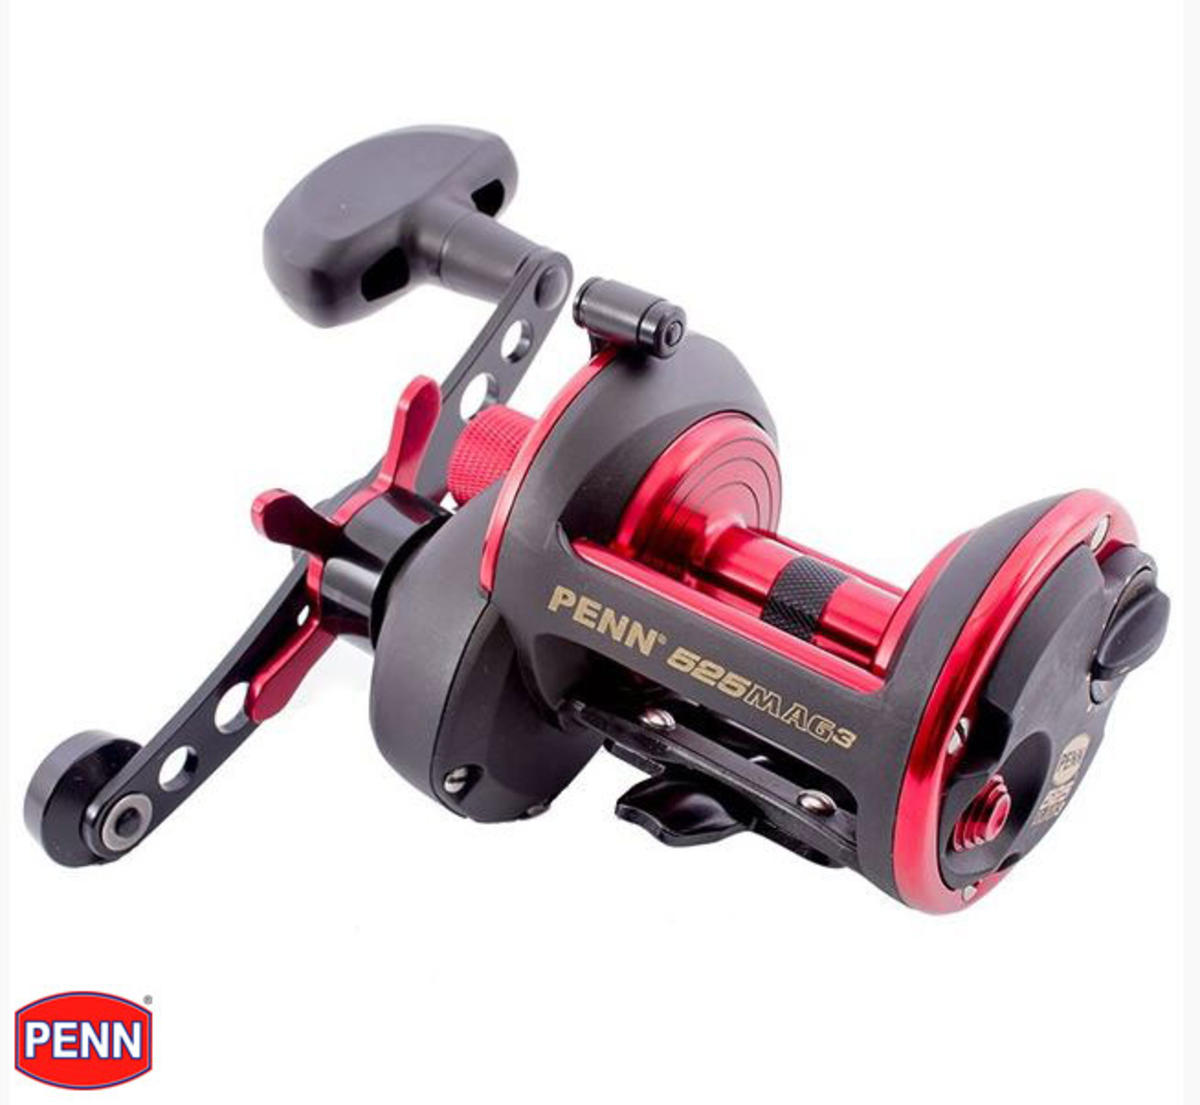 New Penn 525 MAG3 GS Multiplier Sea Fishing Beachcasting Reel